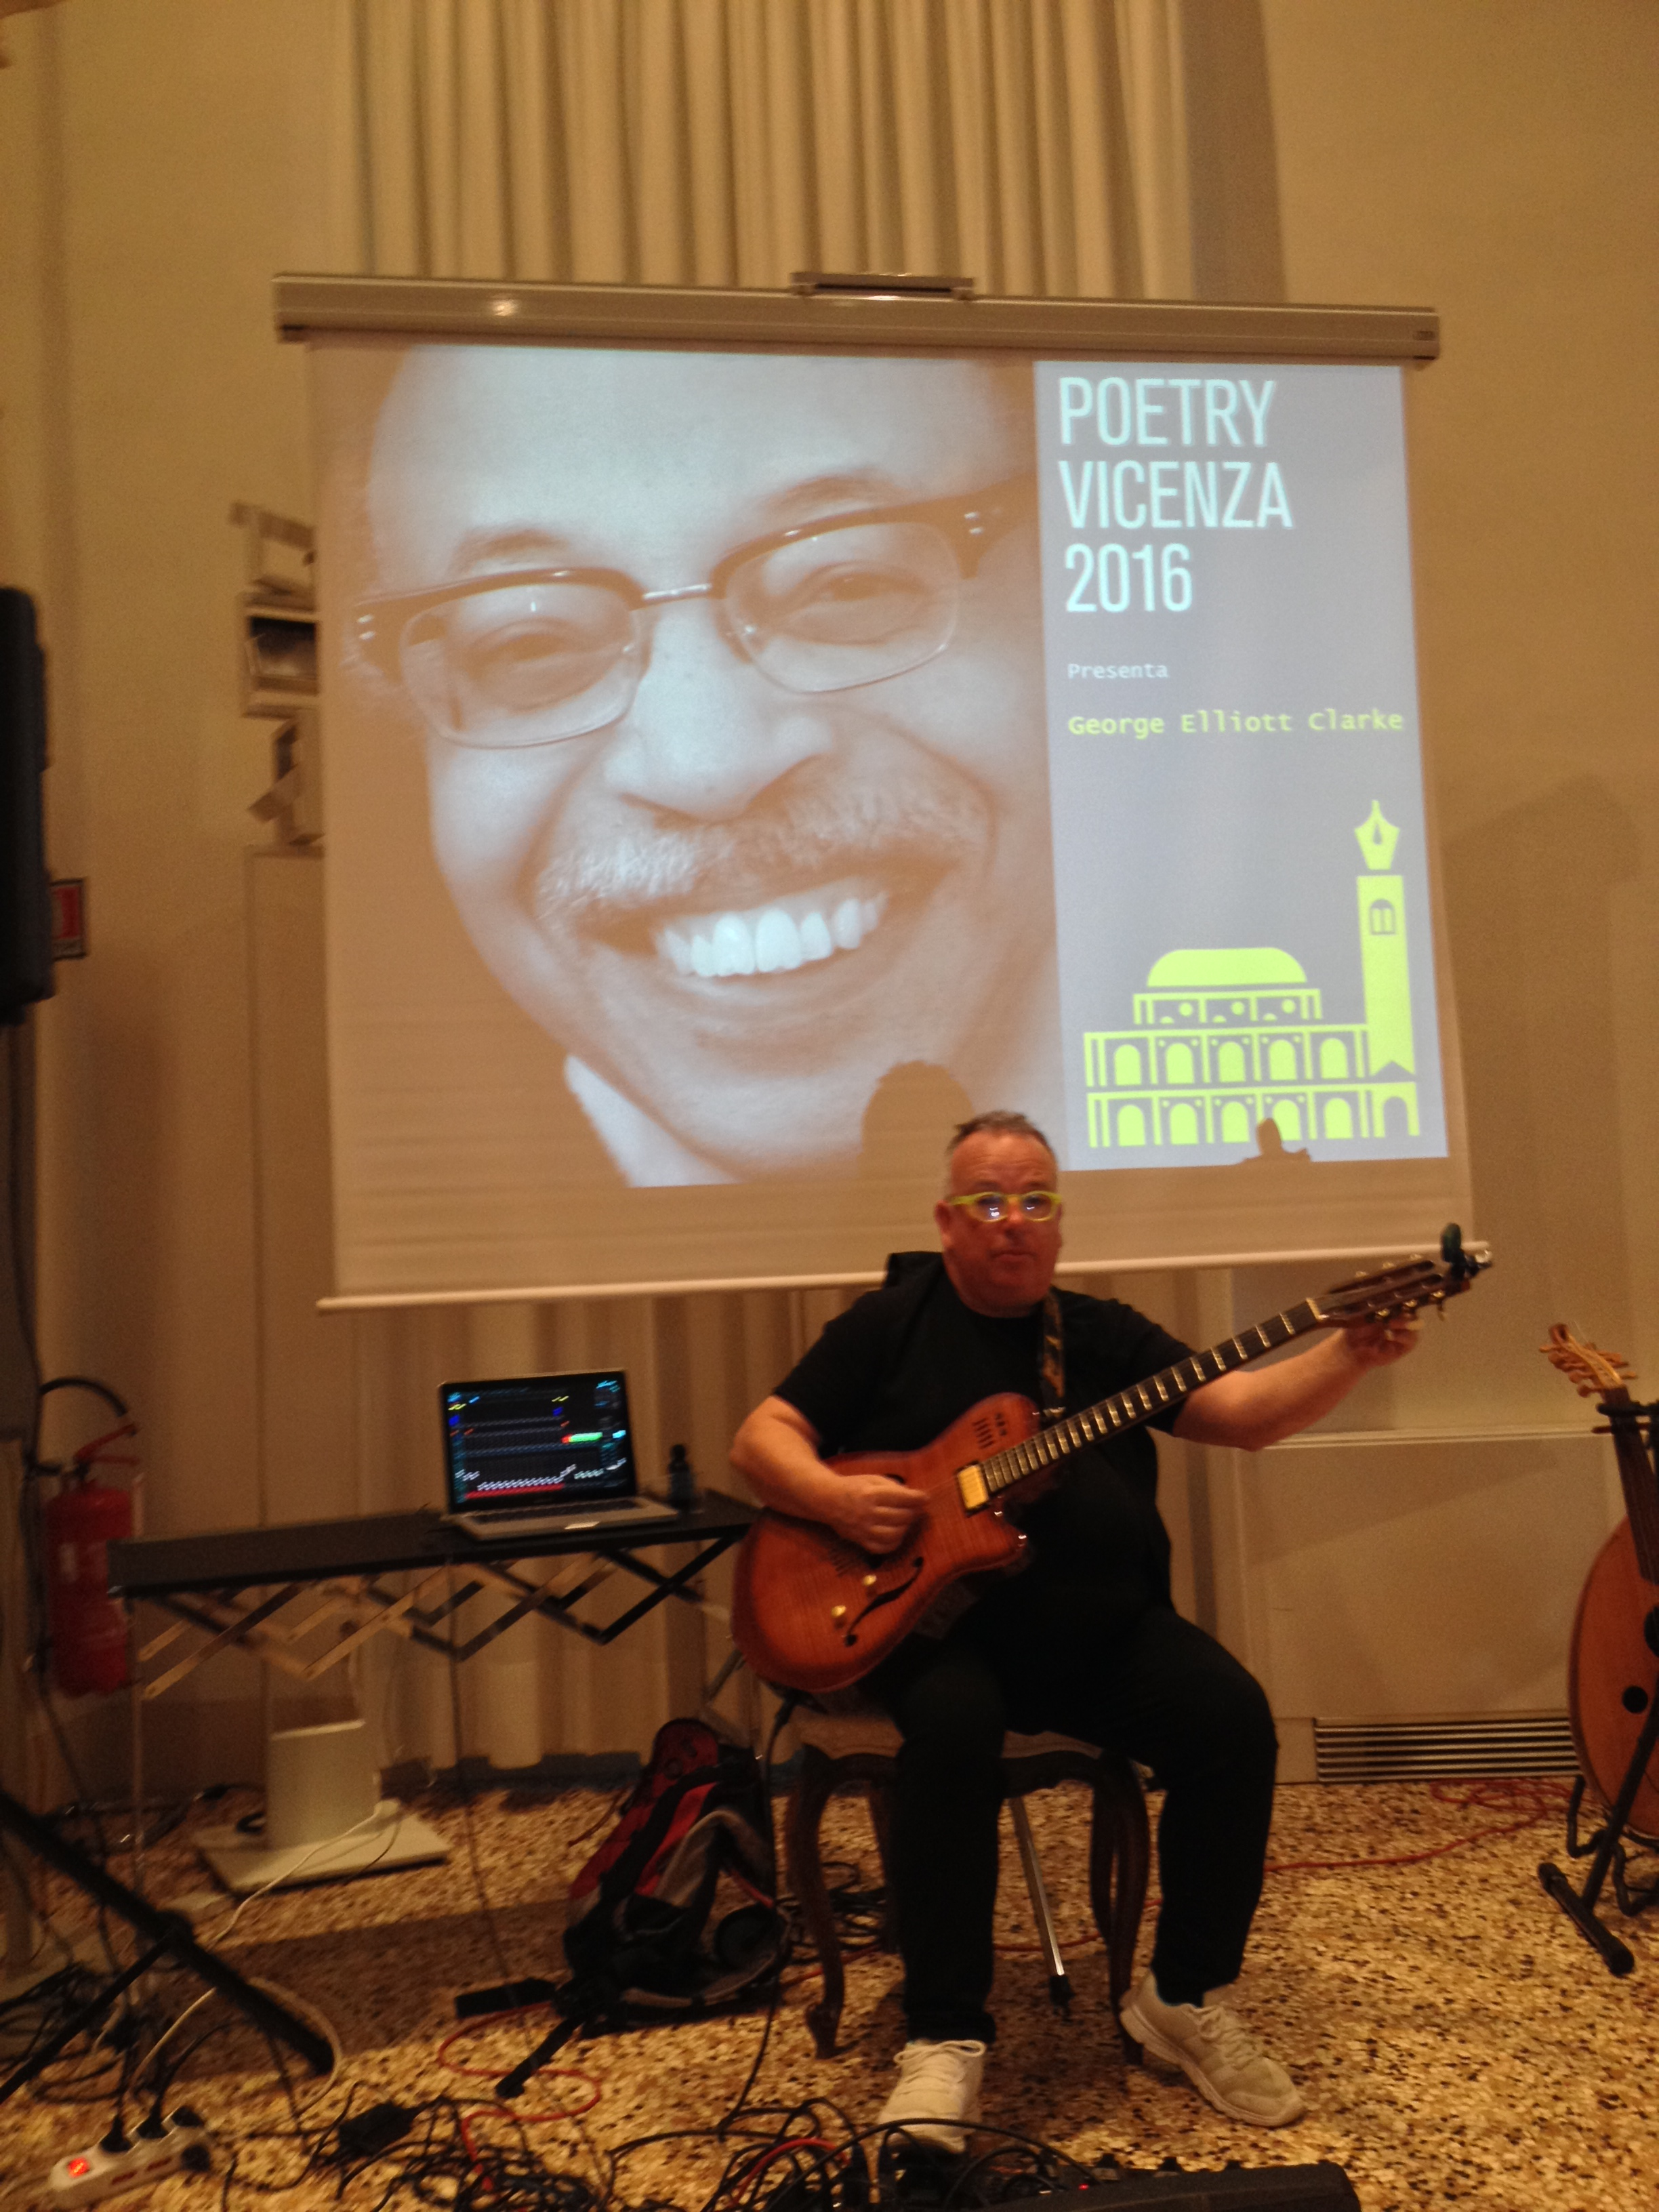 Bruno Censori backing up Clarke at Poetry Vicenza performance, 2016.